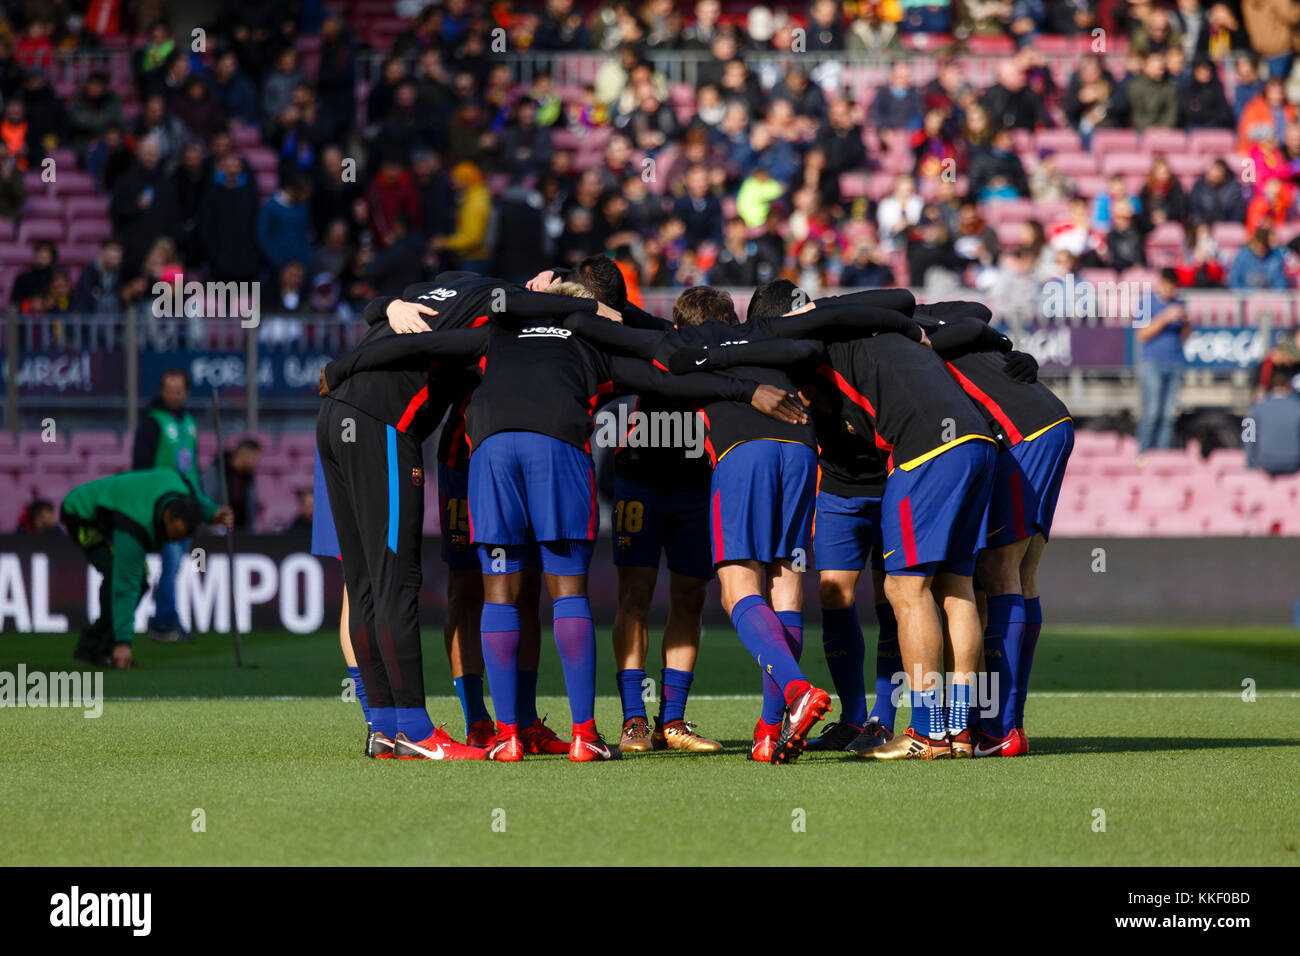 Barcelona, Spain. 02nd Dec, 2017. FC Barcelona team before the match of the La Liga between FC Barcelona and RC - Stock Image